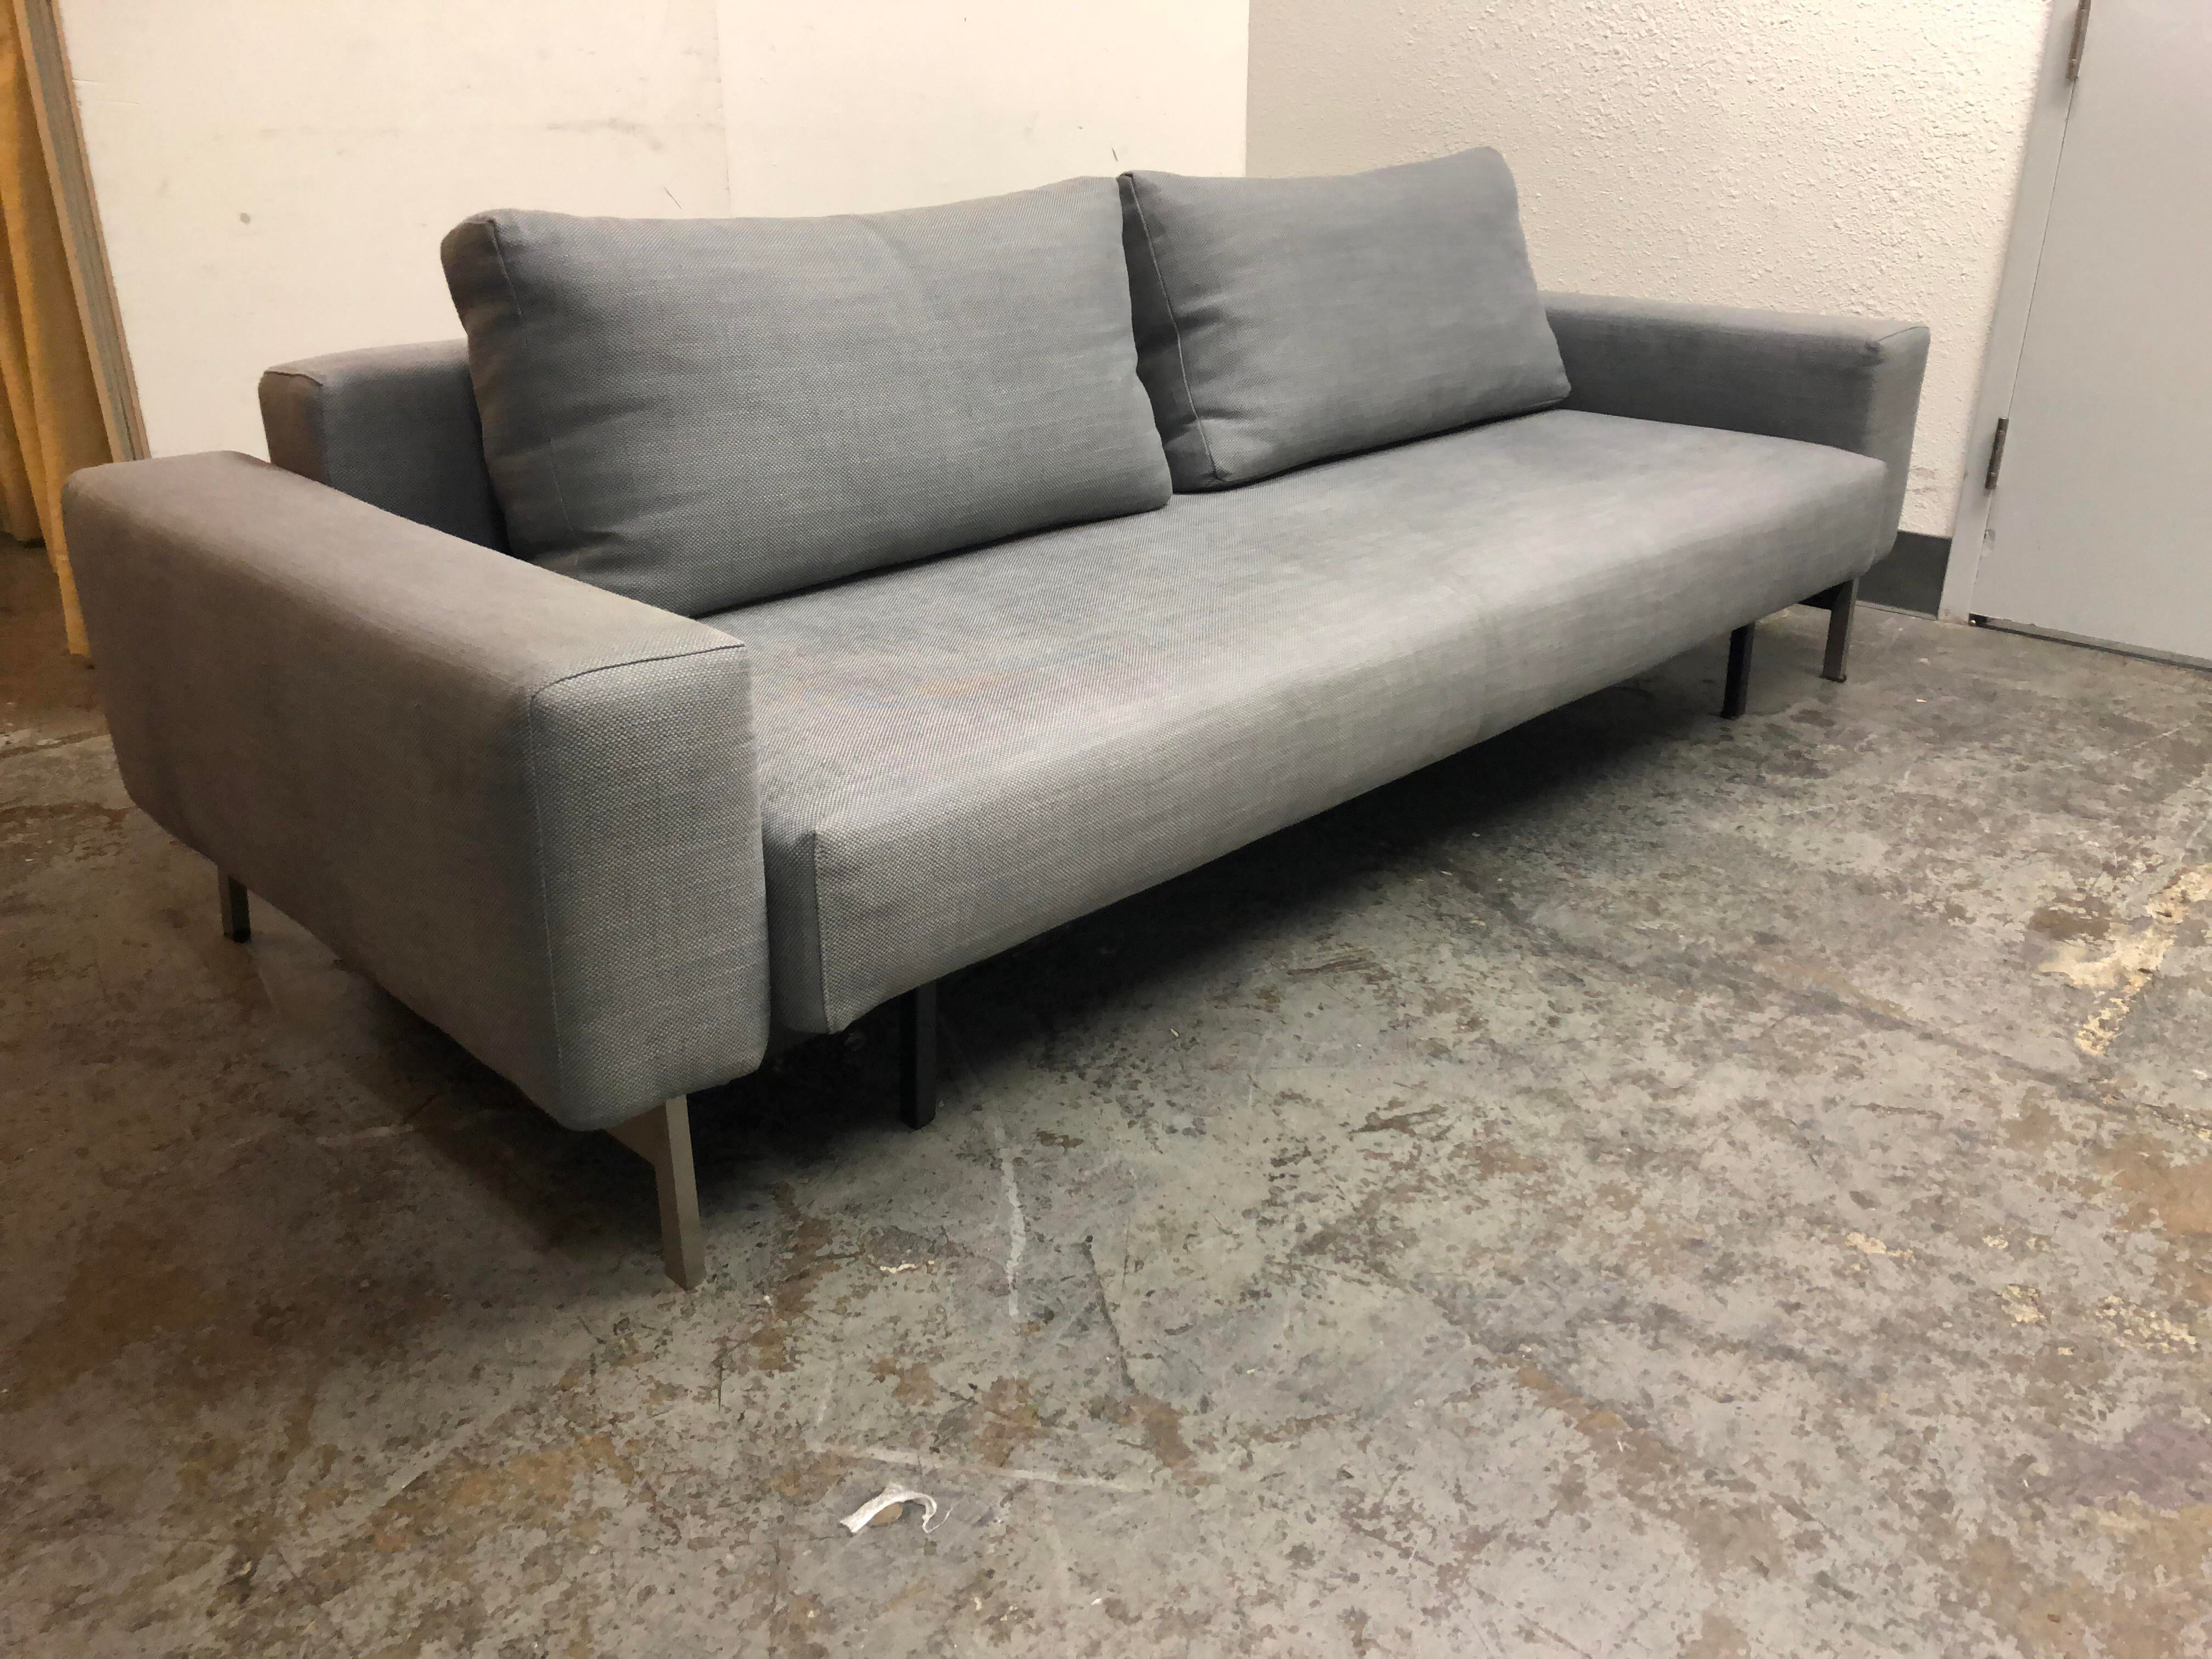 Bon Contemporary Room U0026 Board Full Size Sleeper Sofa For Sale   Image 3 Of 10